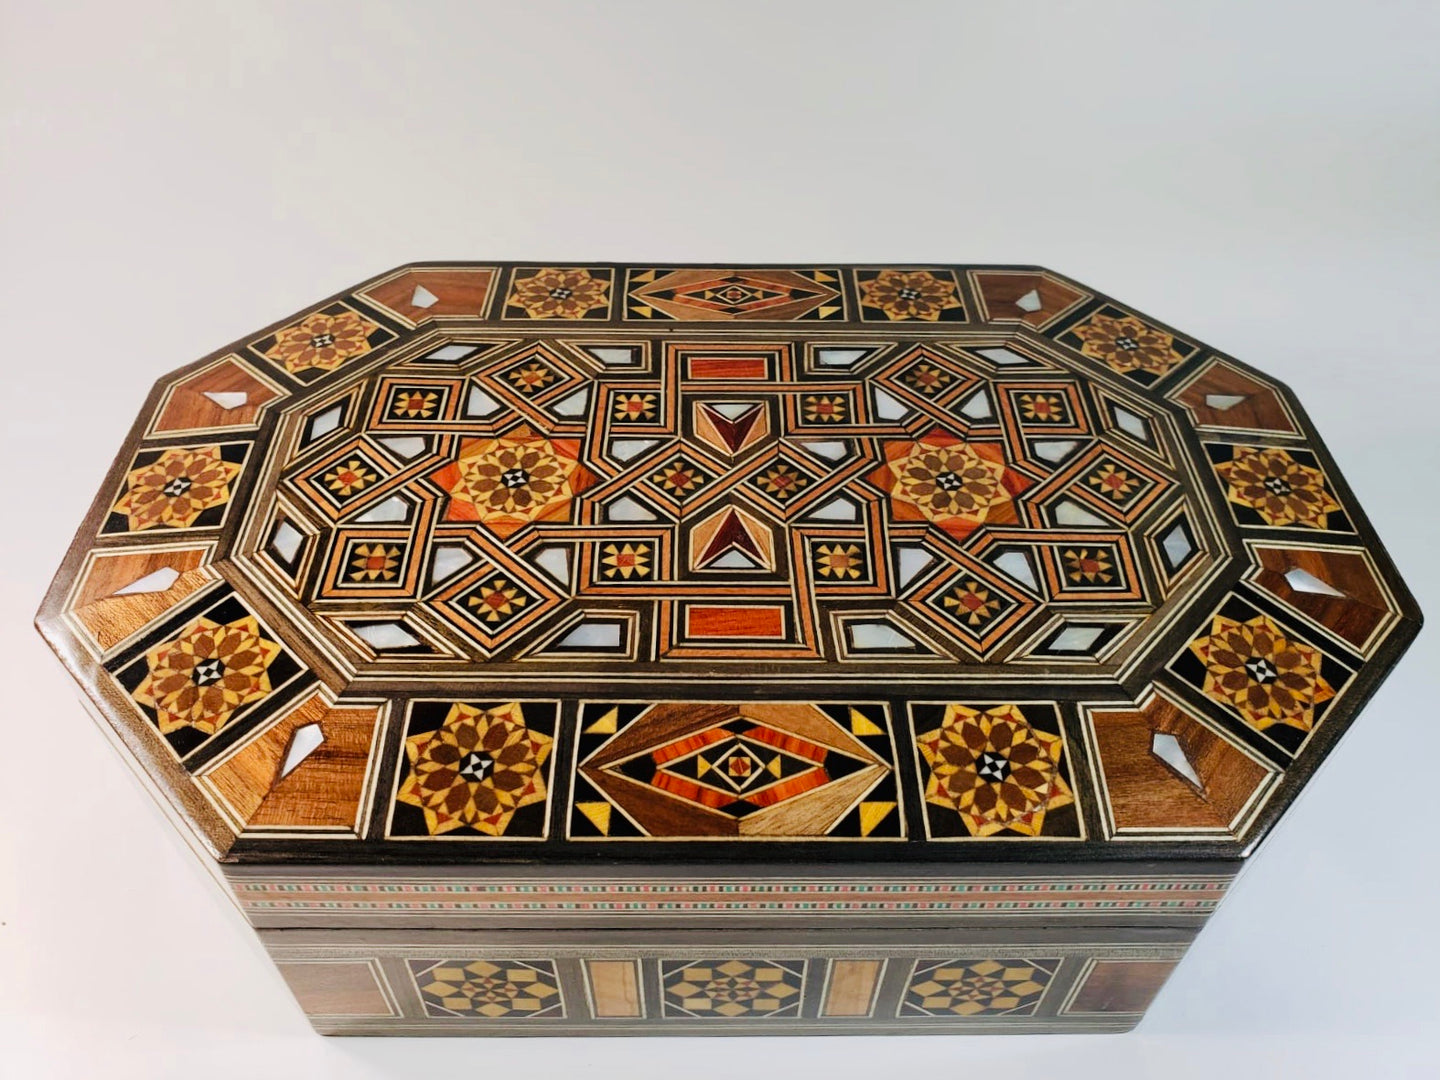 Luxurious Mother of Pearl Syrian Mosaic Box - Gift idea